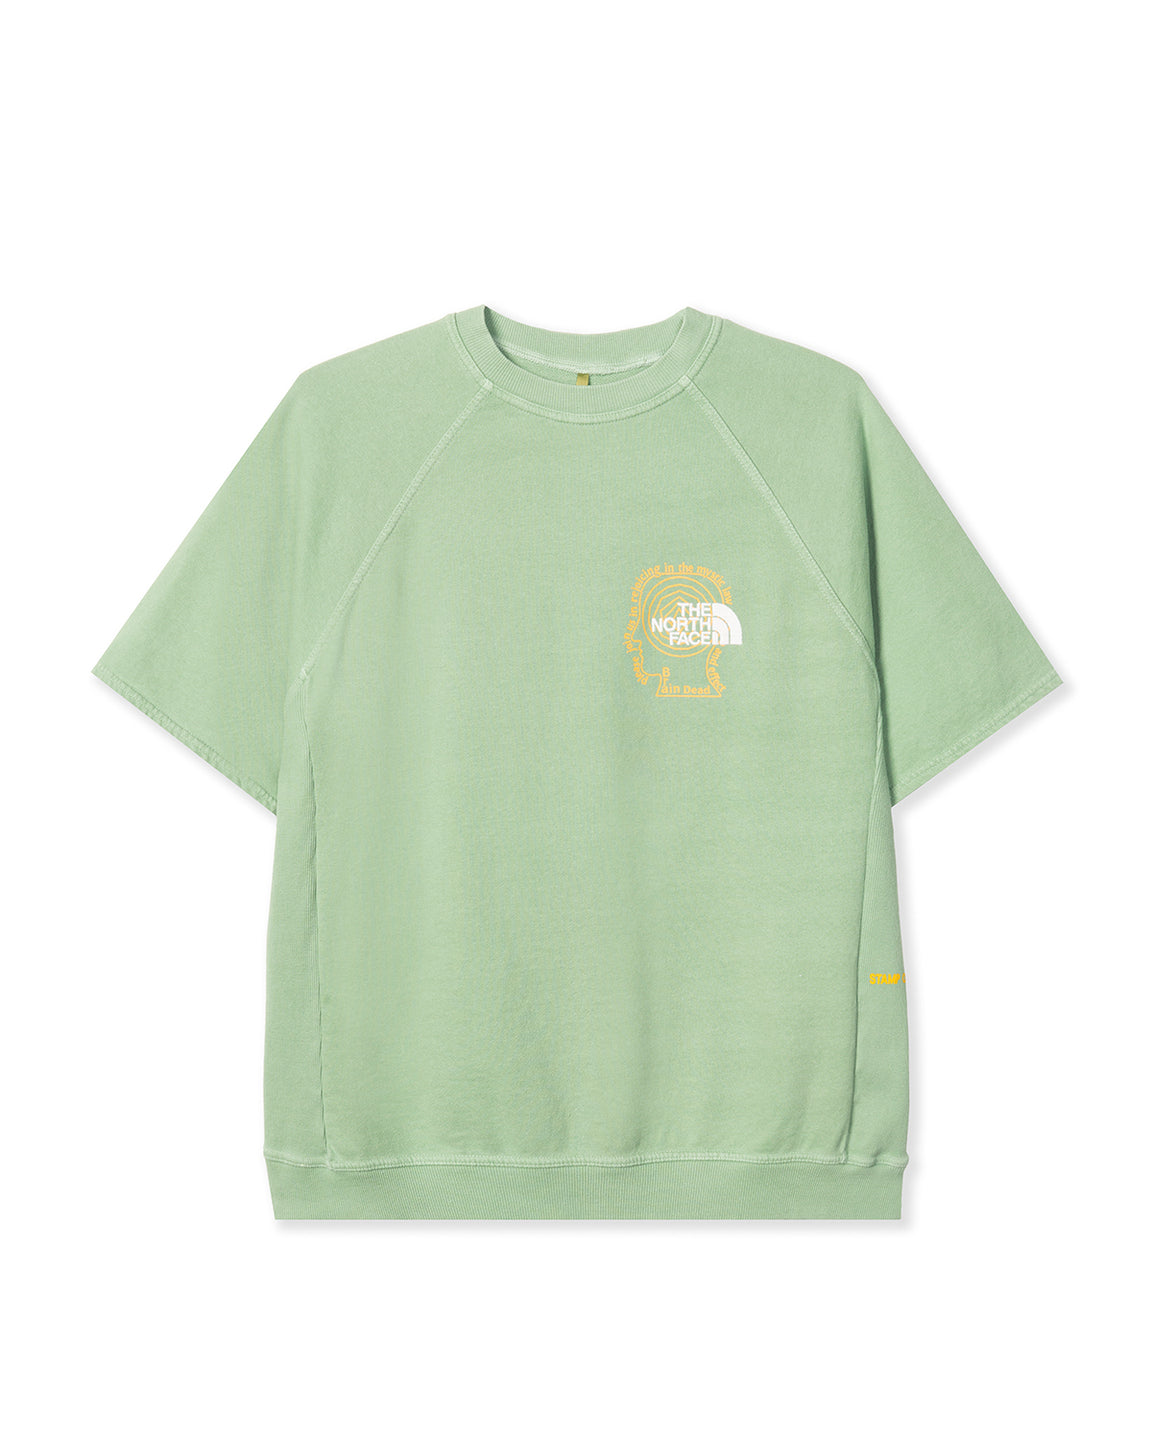 The North Face x Brain Dead SS Crewneck Climber Sweatshirt - Green